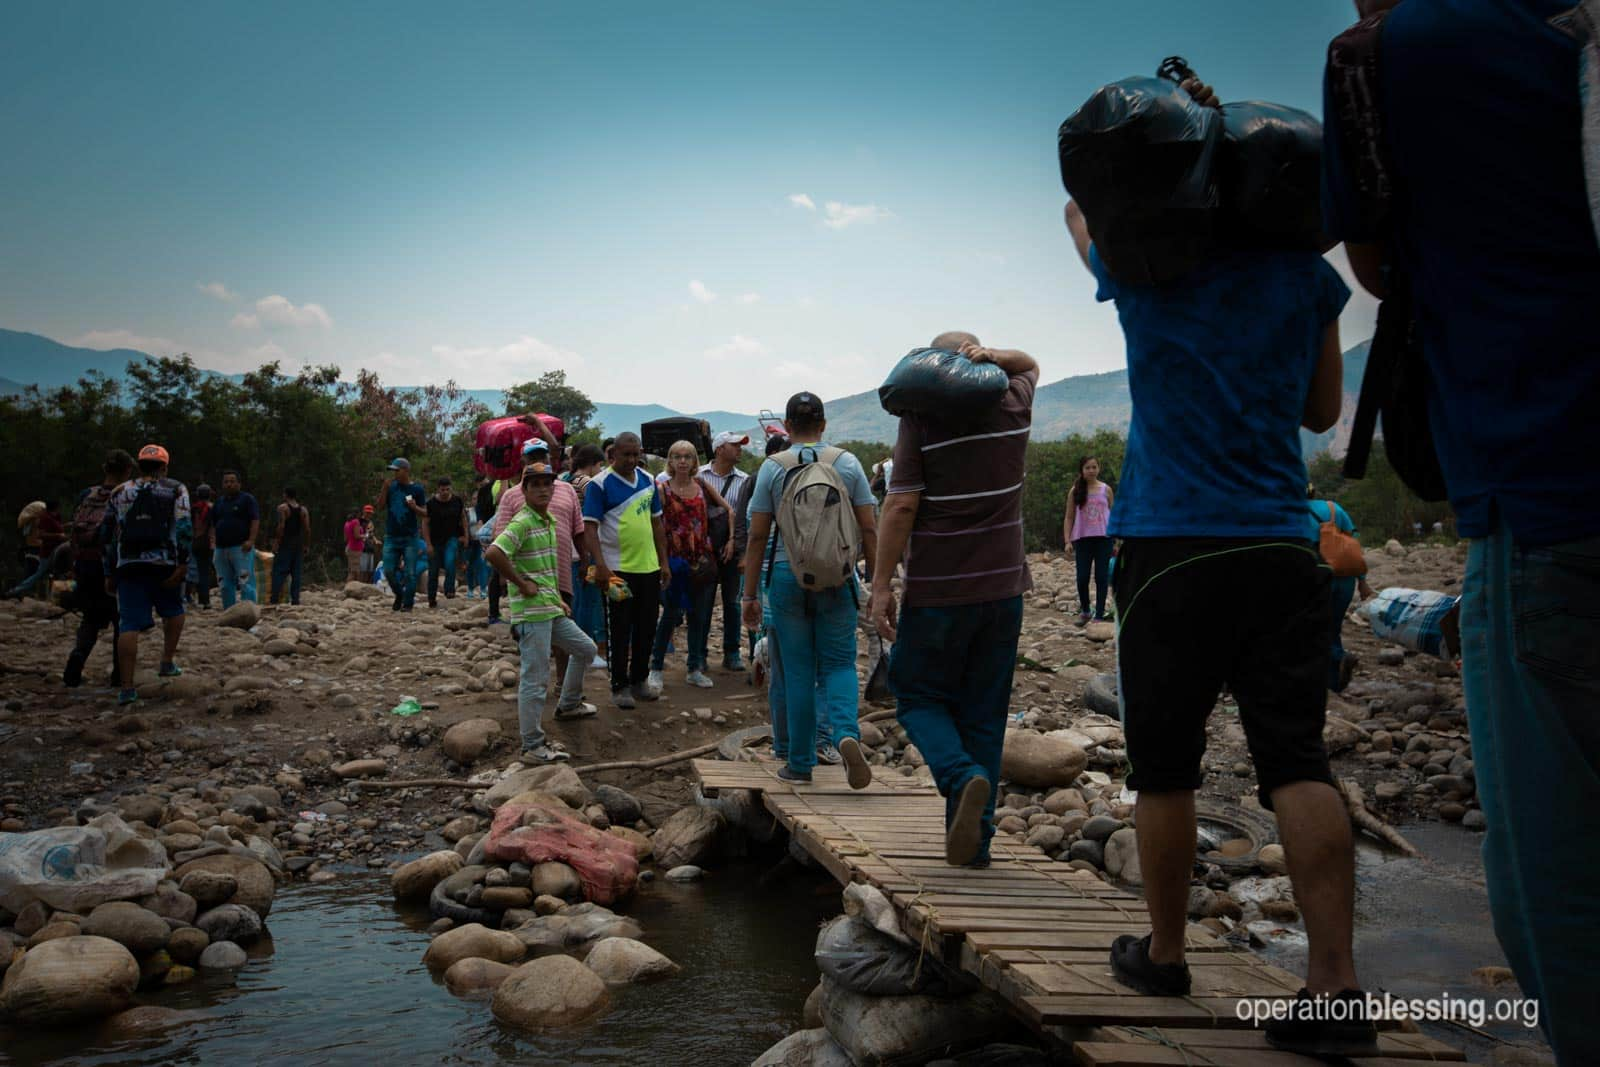 Venezuelan refugees crossing illegally due to the Venezuela humanitarian crisis.